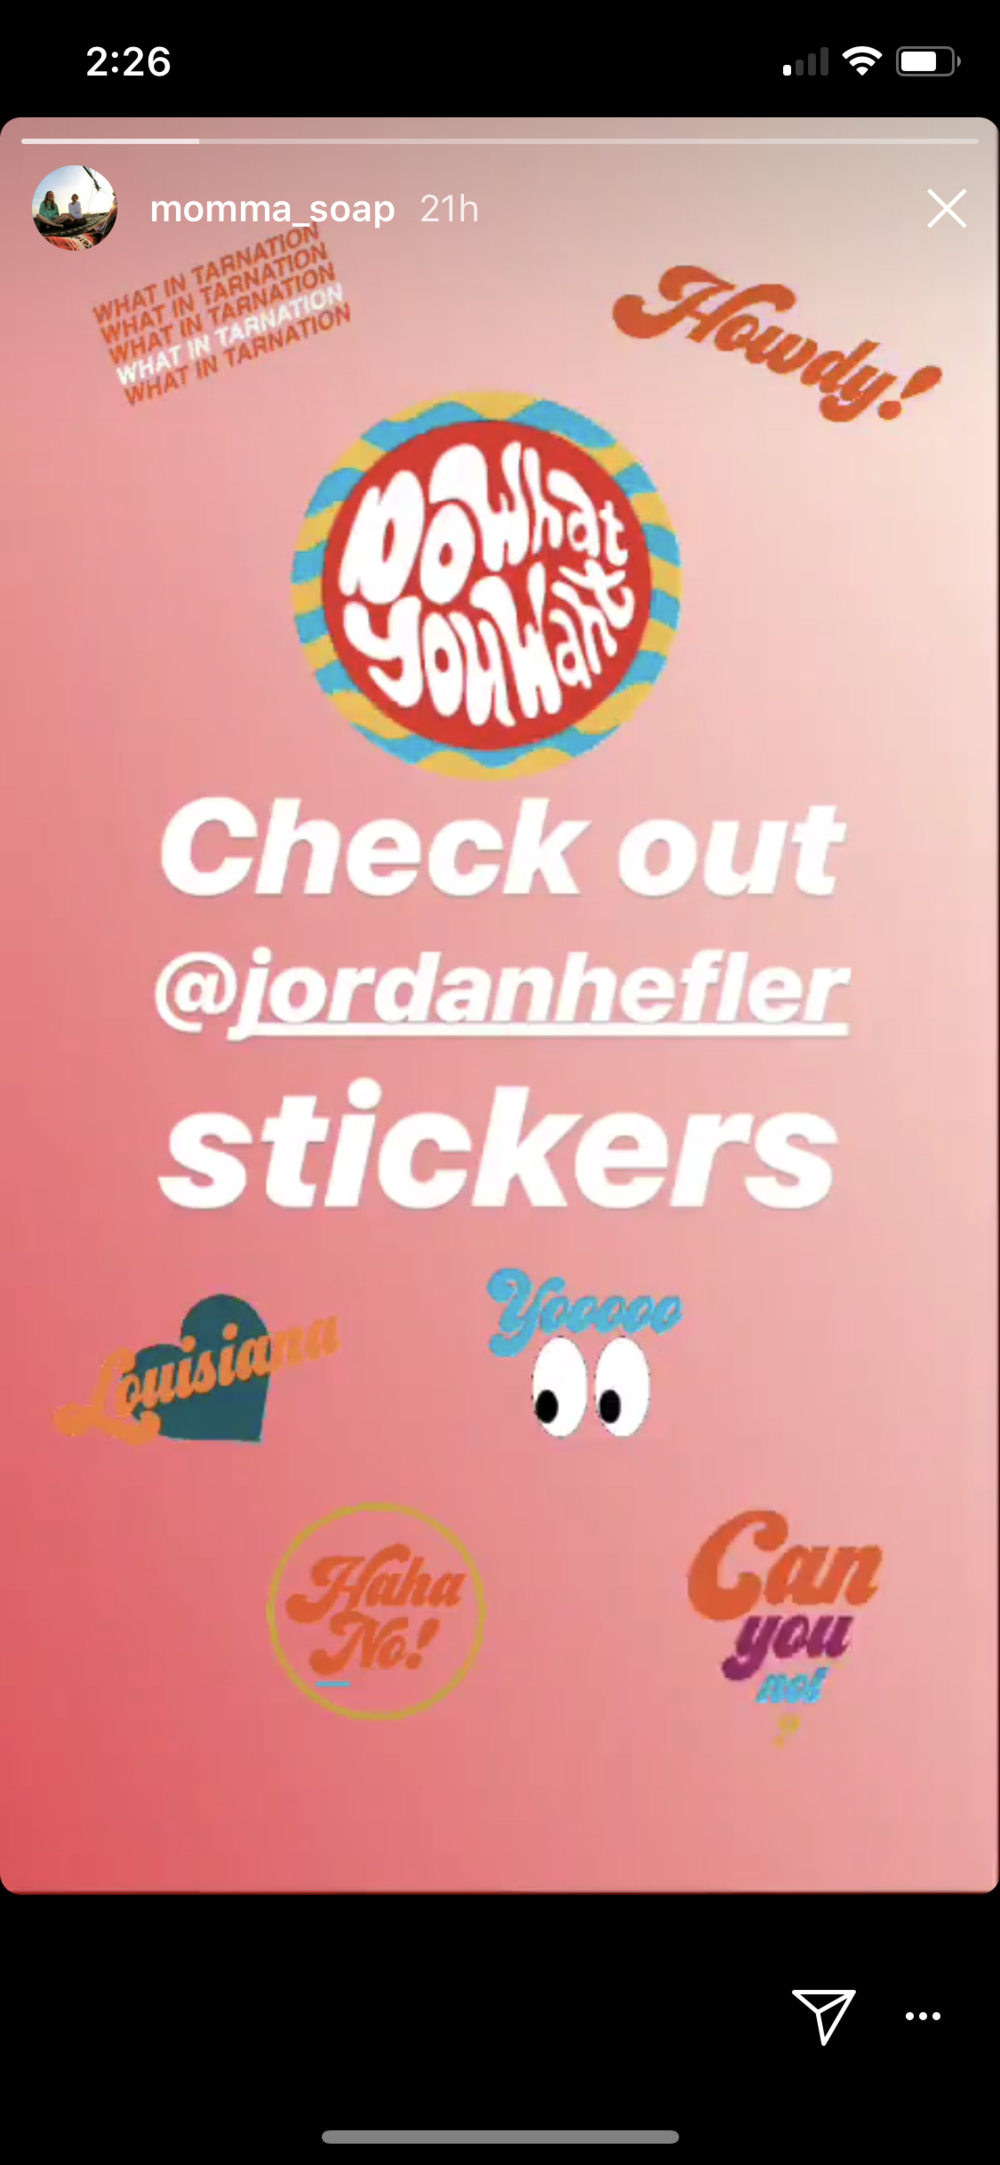 How to Make Gif Stickers for Instagram and Snapchat Stories | Jordan Hefler